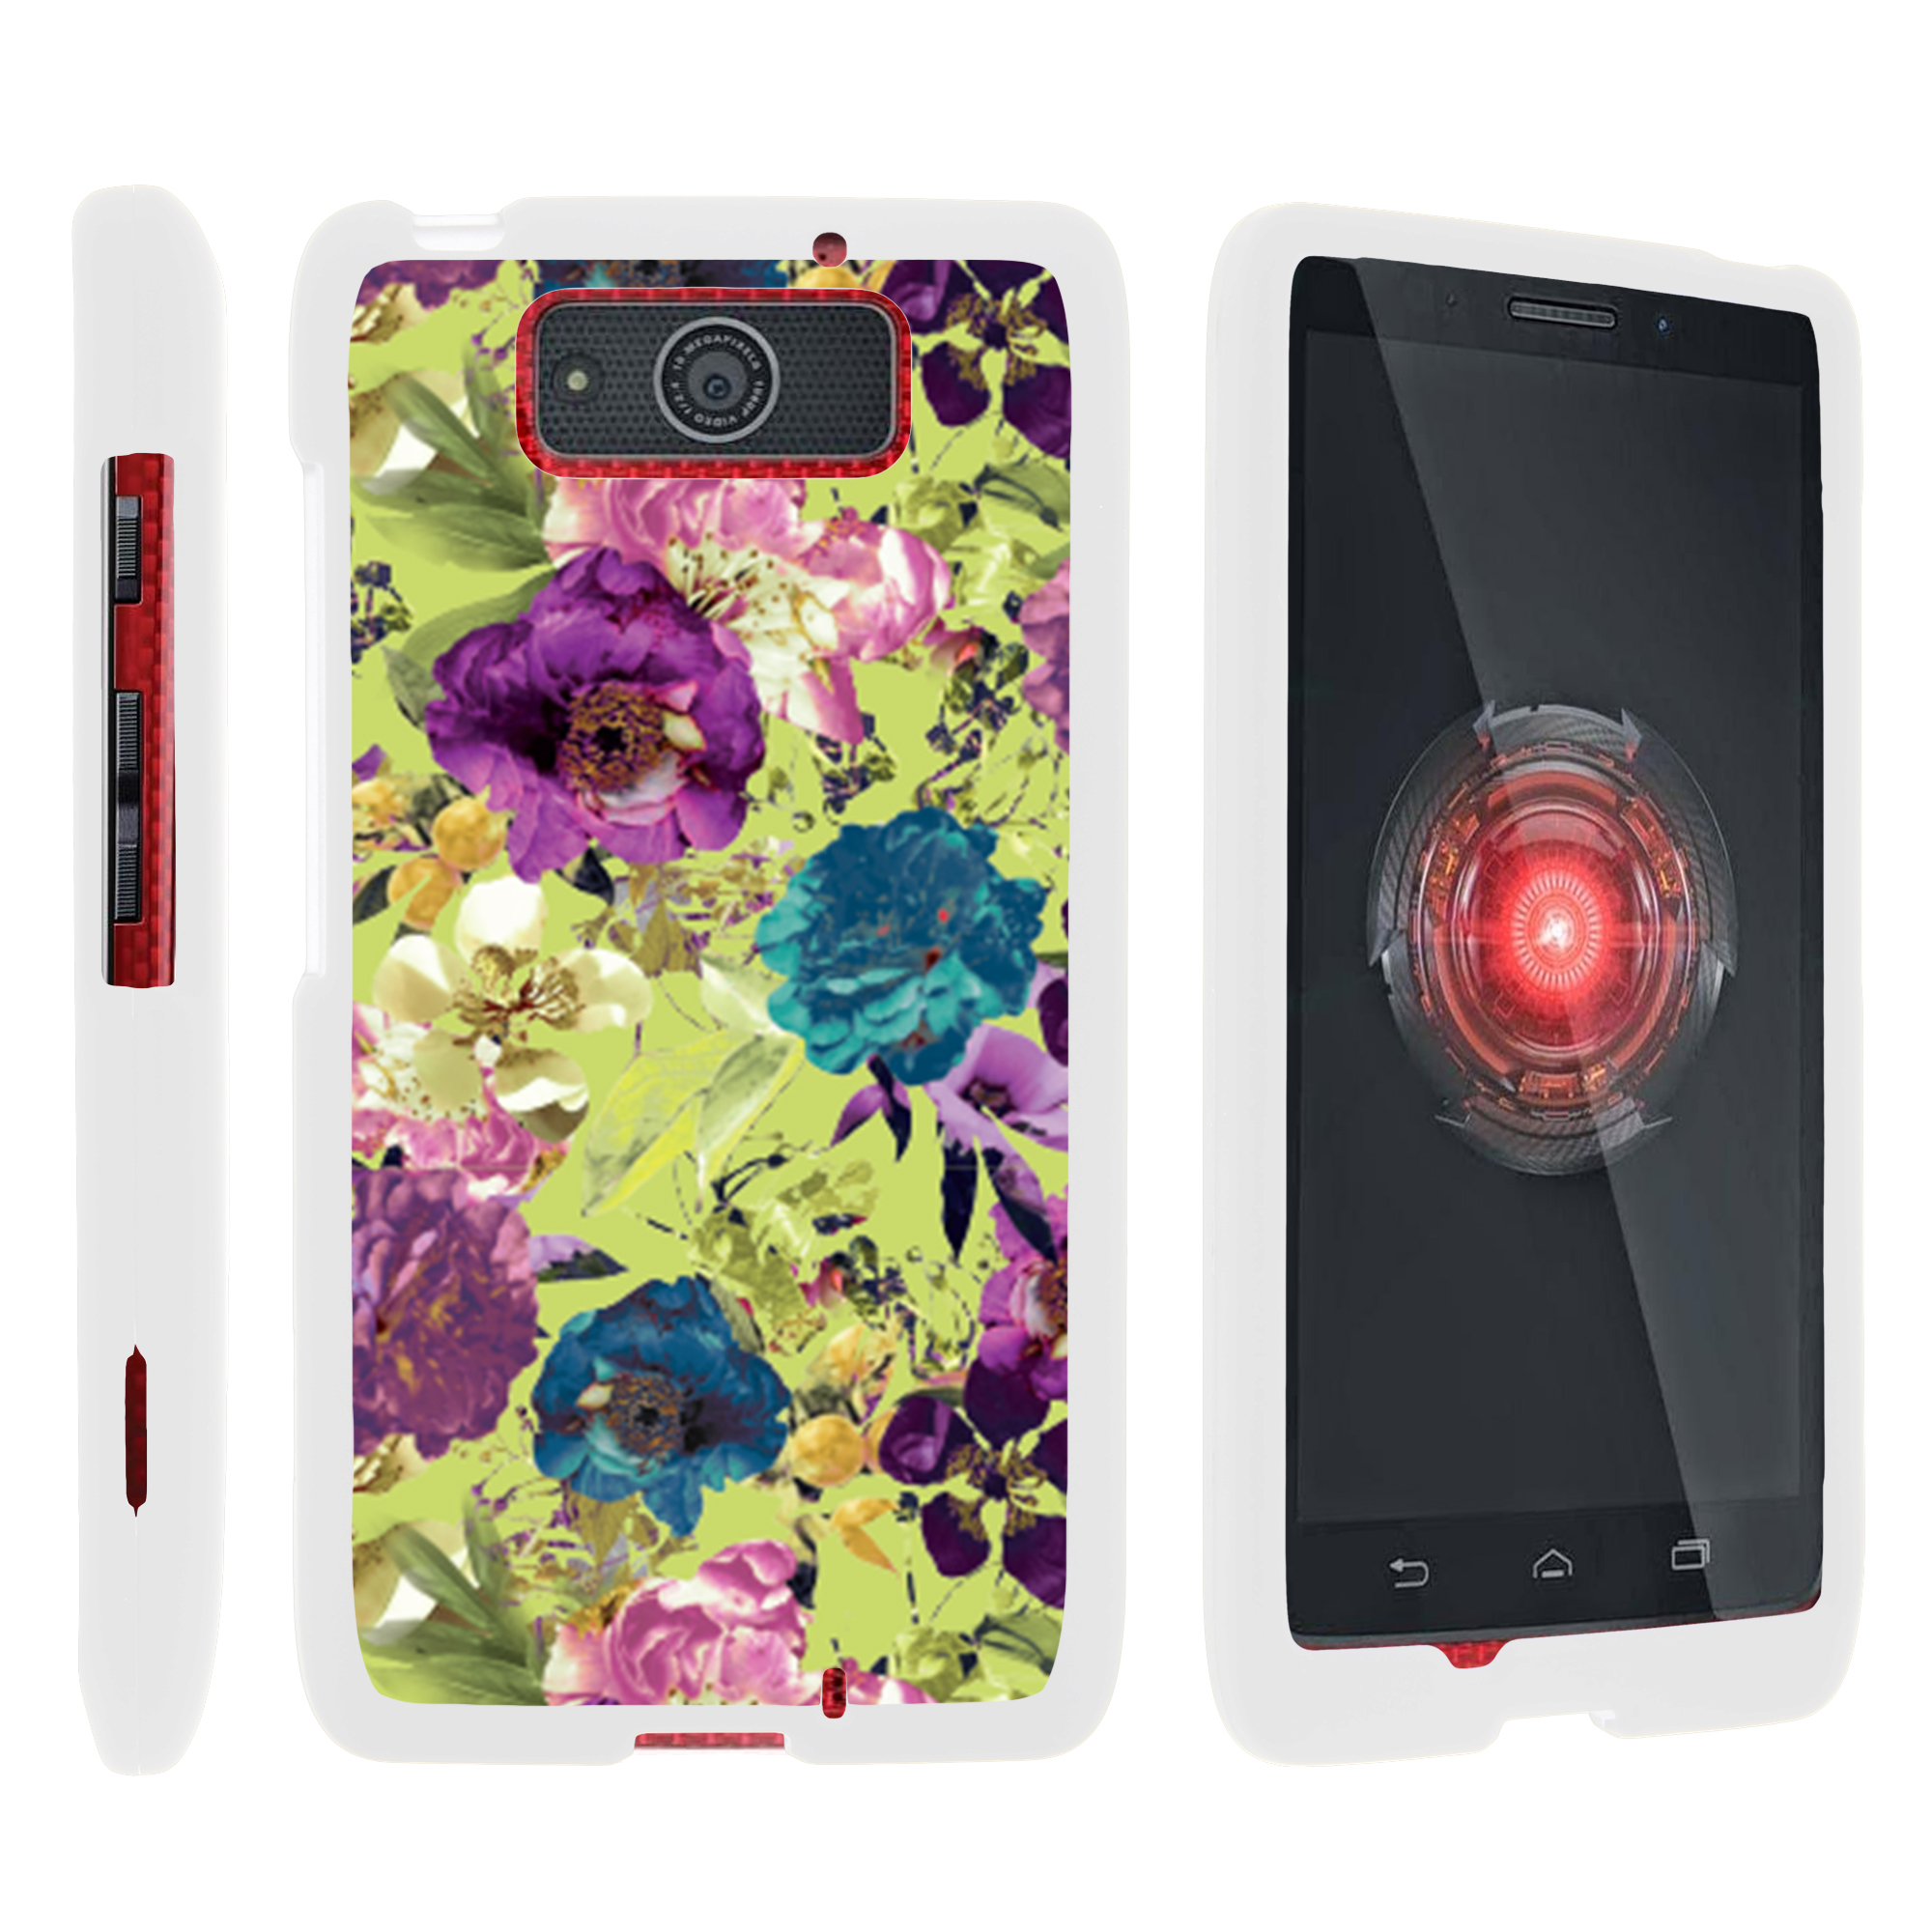 Motorola Droid Ultra XT1080 | Droid Maxx XT1080-M, [SNAP SHELL][White] Hard White Plastic Case with Non Slip Matte Coating with Custom Designs - Yellow Purple Flowers